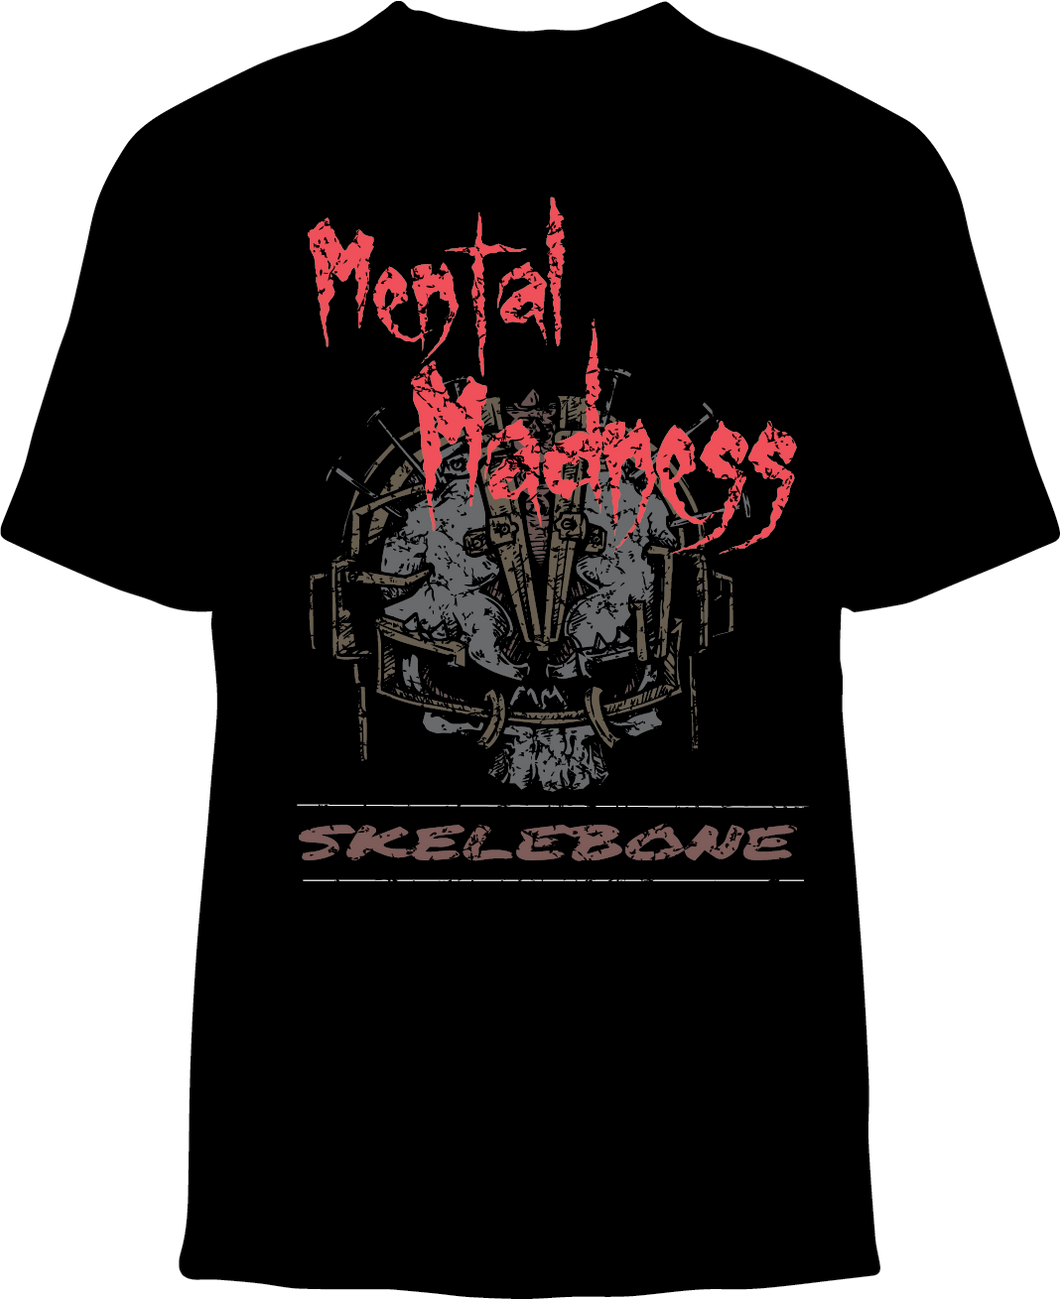 Skelebone Short Sleeve T-shirt, Mental Madness Back Print, Logo Front Print